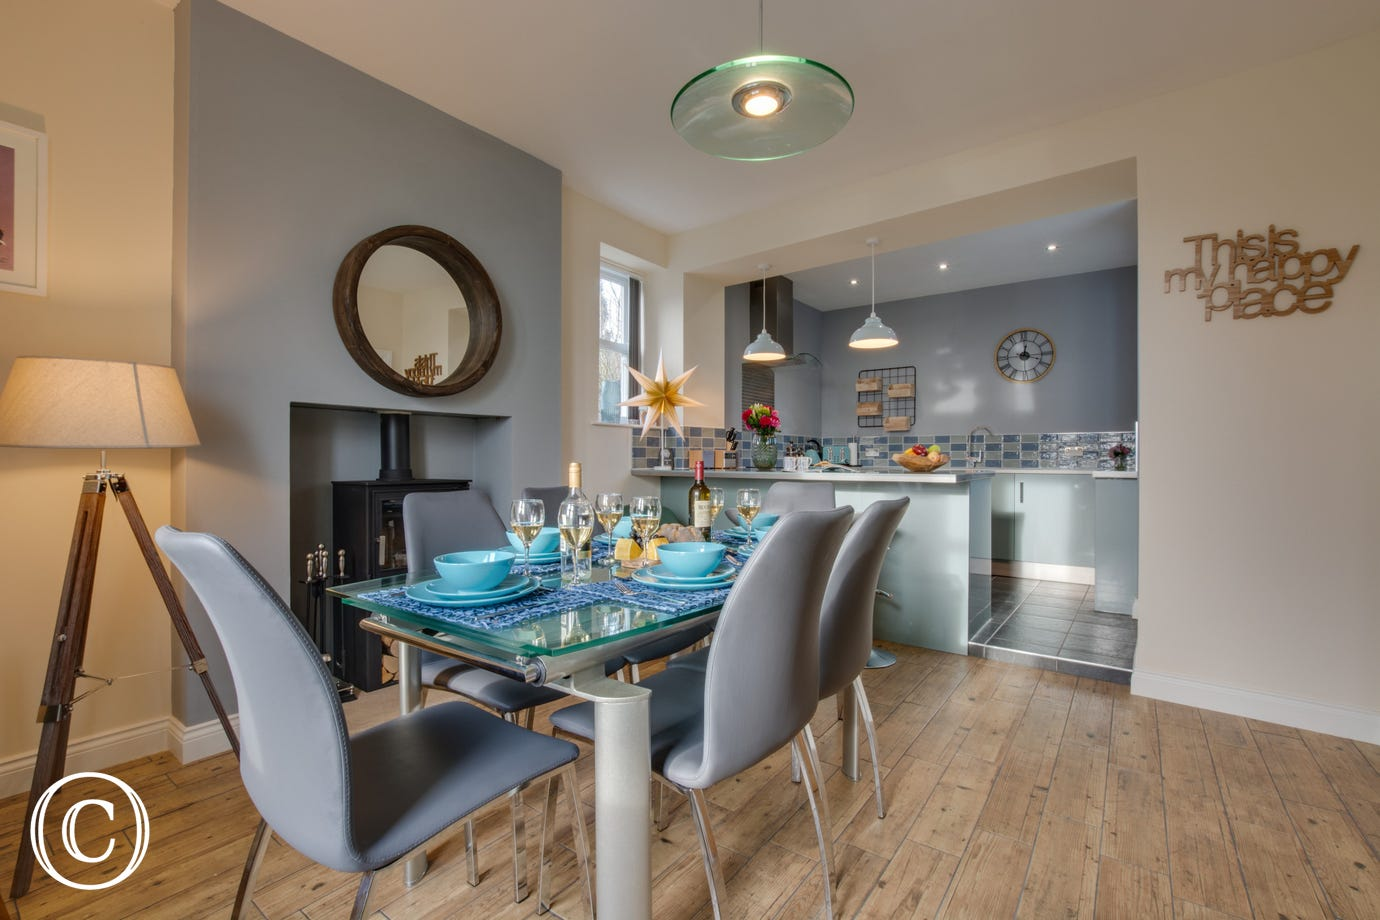 Kitchen dining room, well equipped and a great social room for entertaining